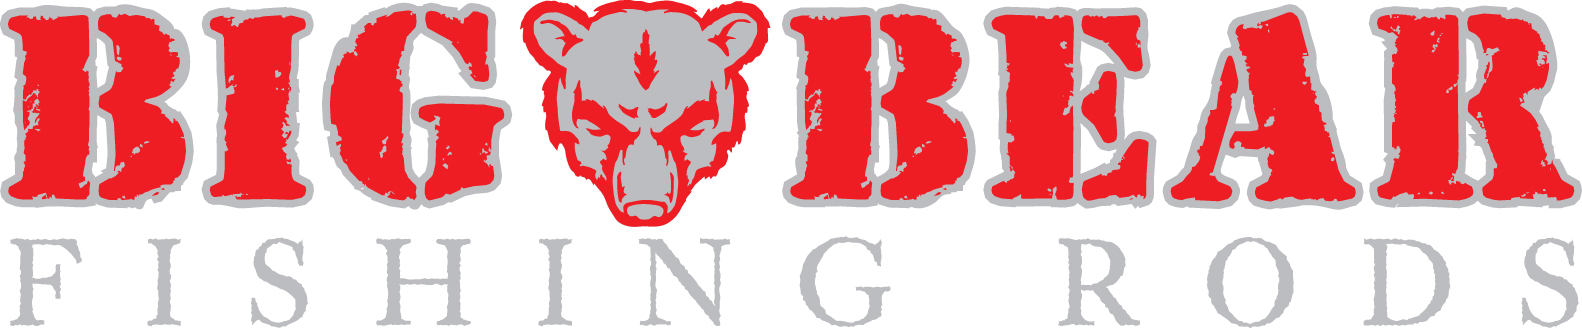 Big Bear Fishing Rods Logo